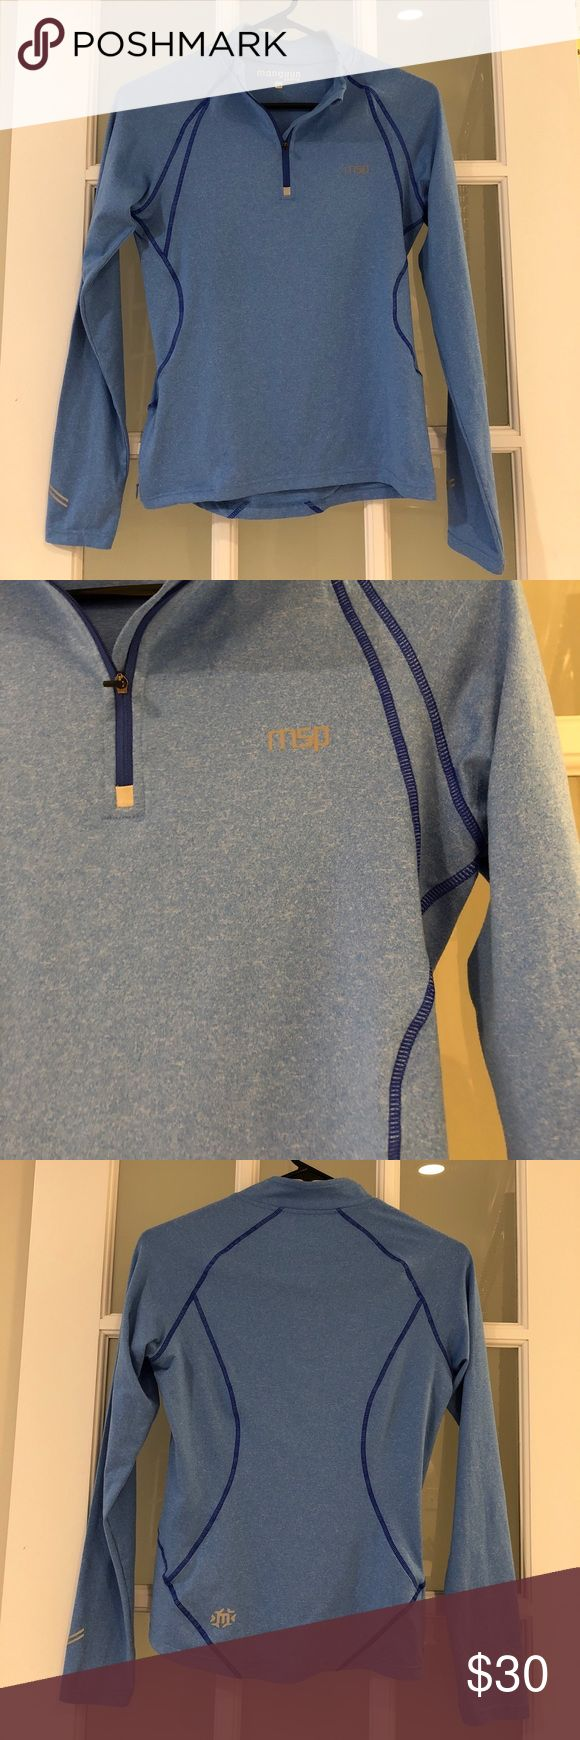 NWOT sports top Bought in Germany, never worn. Size is European 36, fits like US Xsmall. Great quality. Zipper pocket on the right side. Very sleek. Manguun Sports Tops